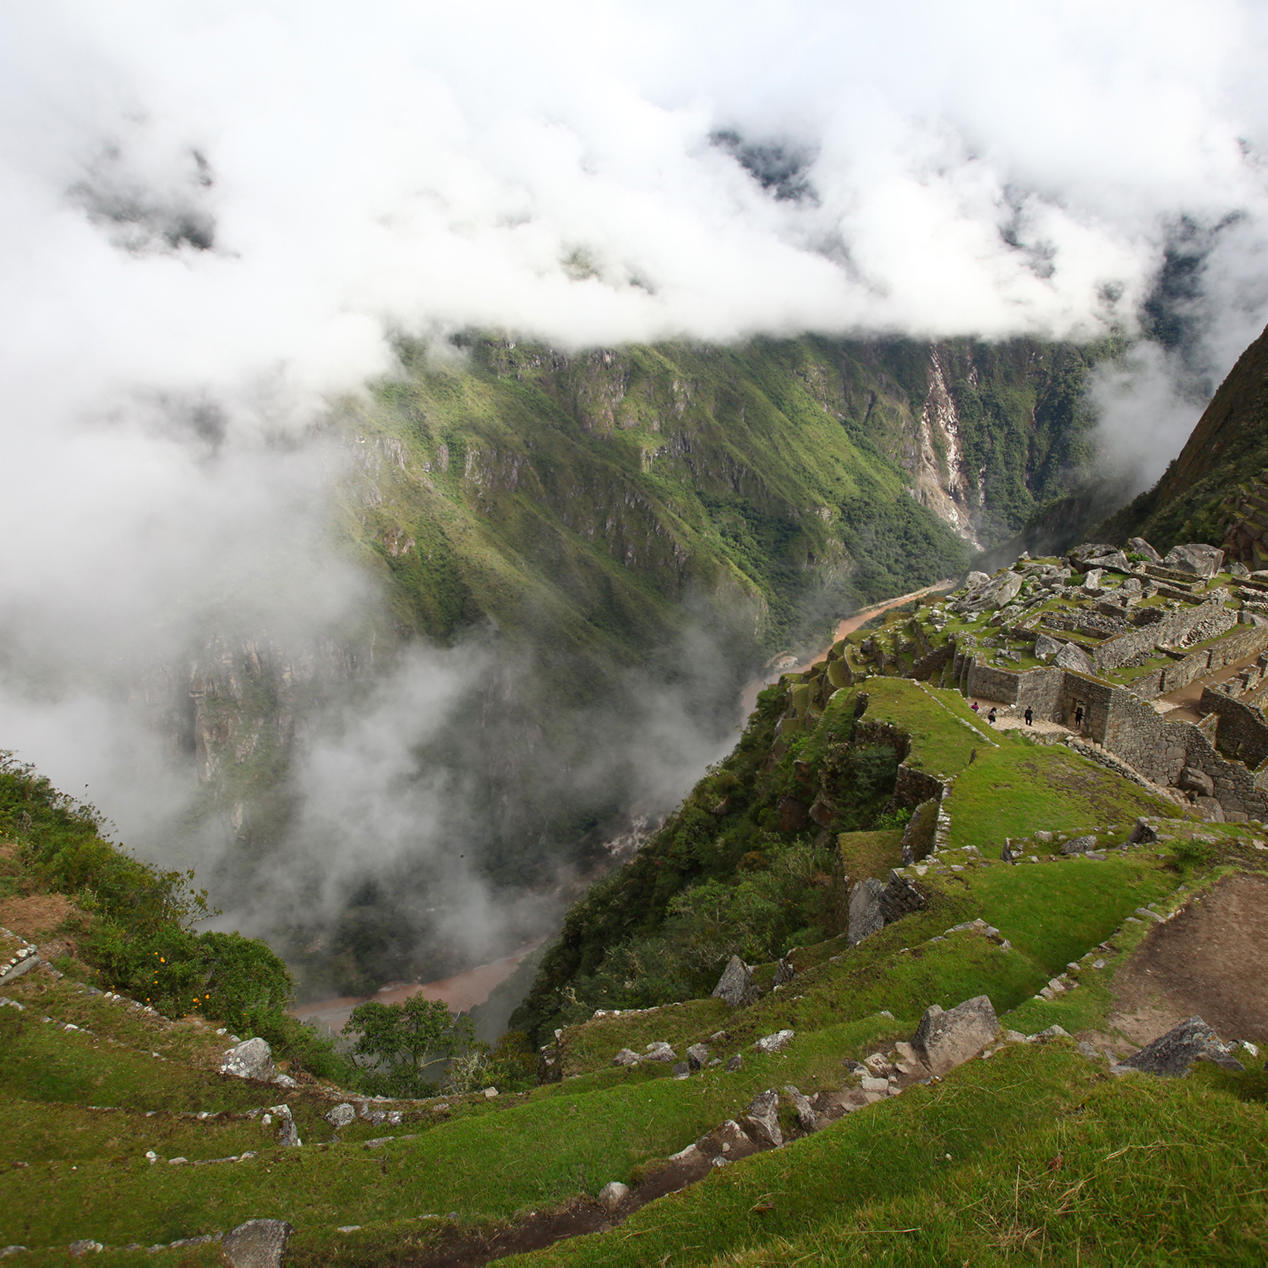 View of the The mysterious inca wall near Hotel Sumaq